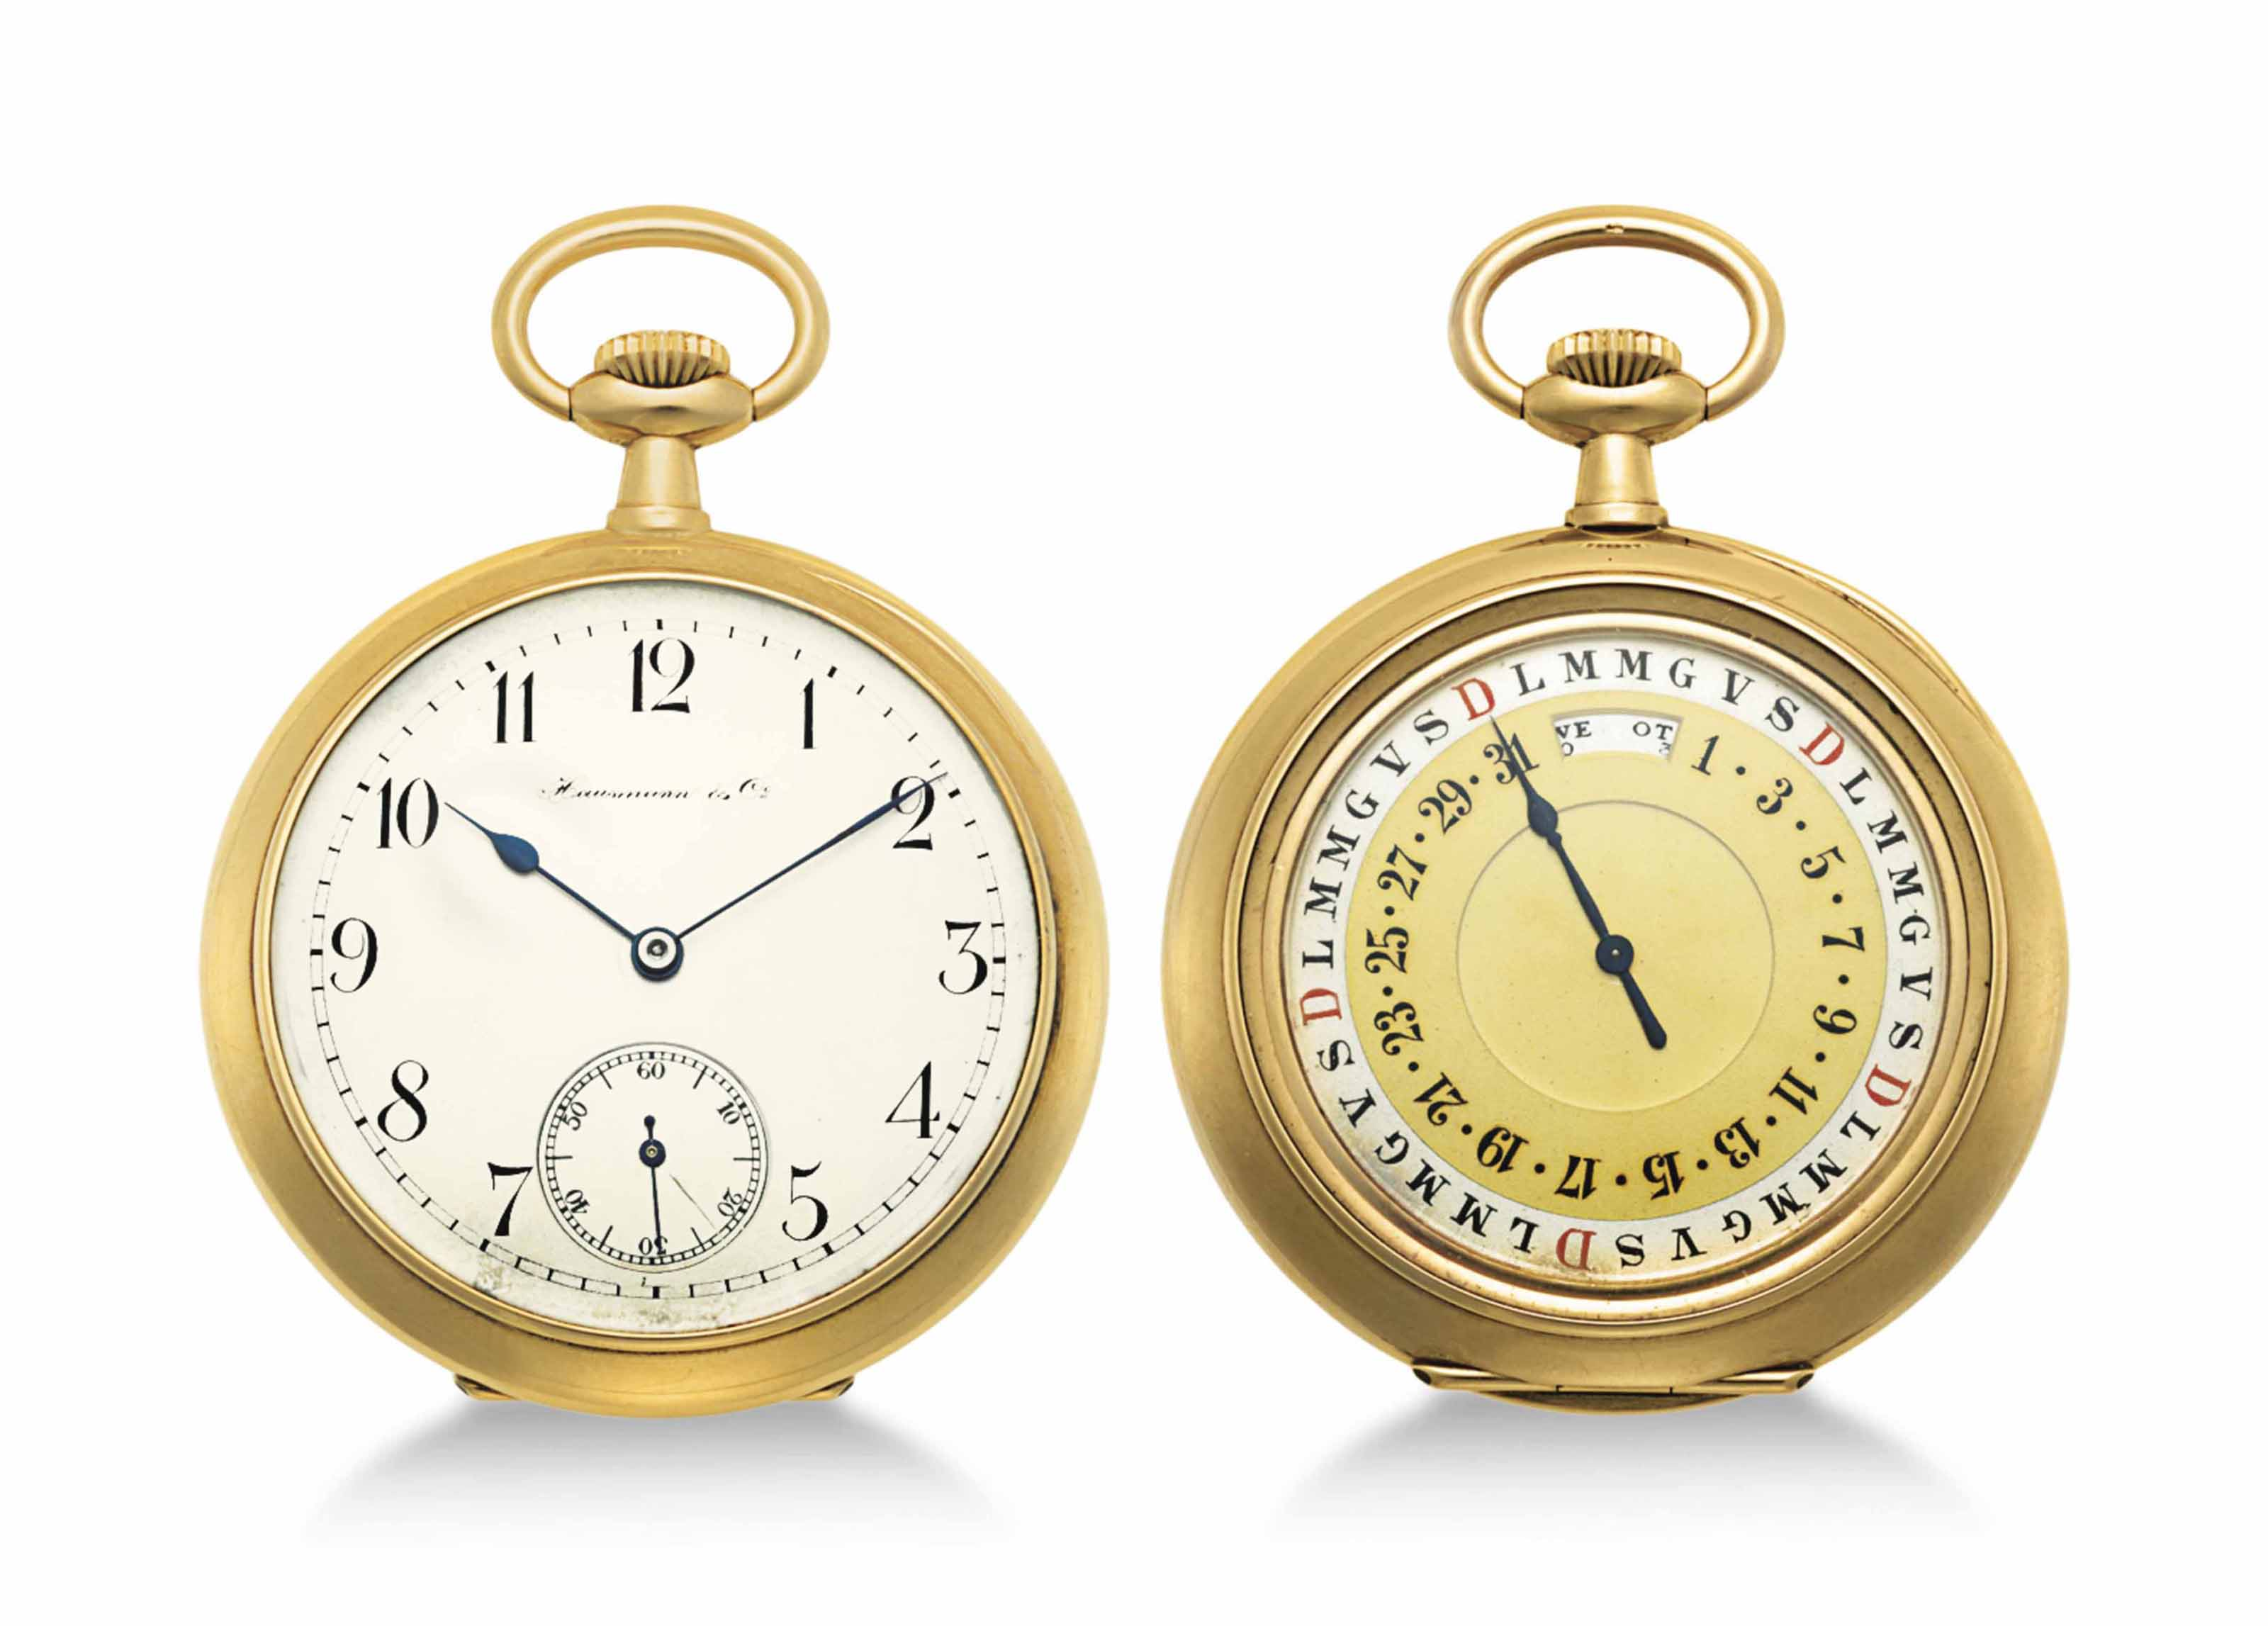 Hausmann & Co. An 18k Gold Openface Keyless Lever Watch with Day, Date and Month Indication